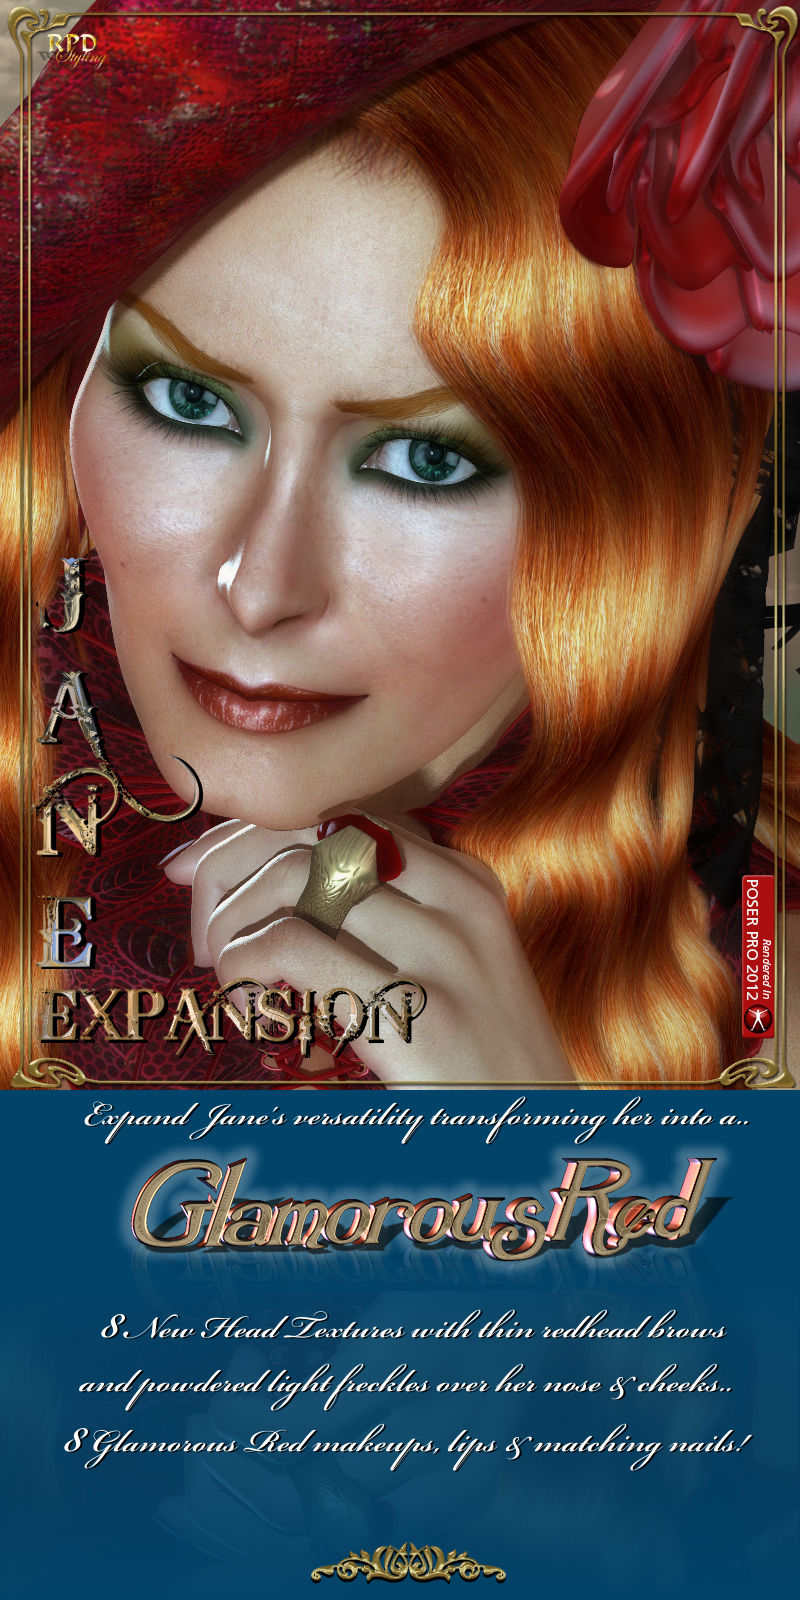 Jane-EXPANSION - Glamorous Red